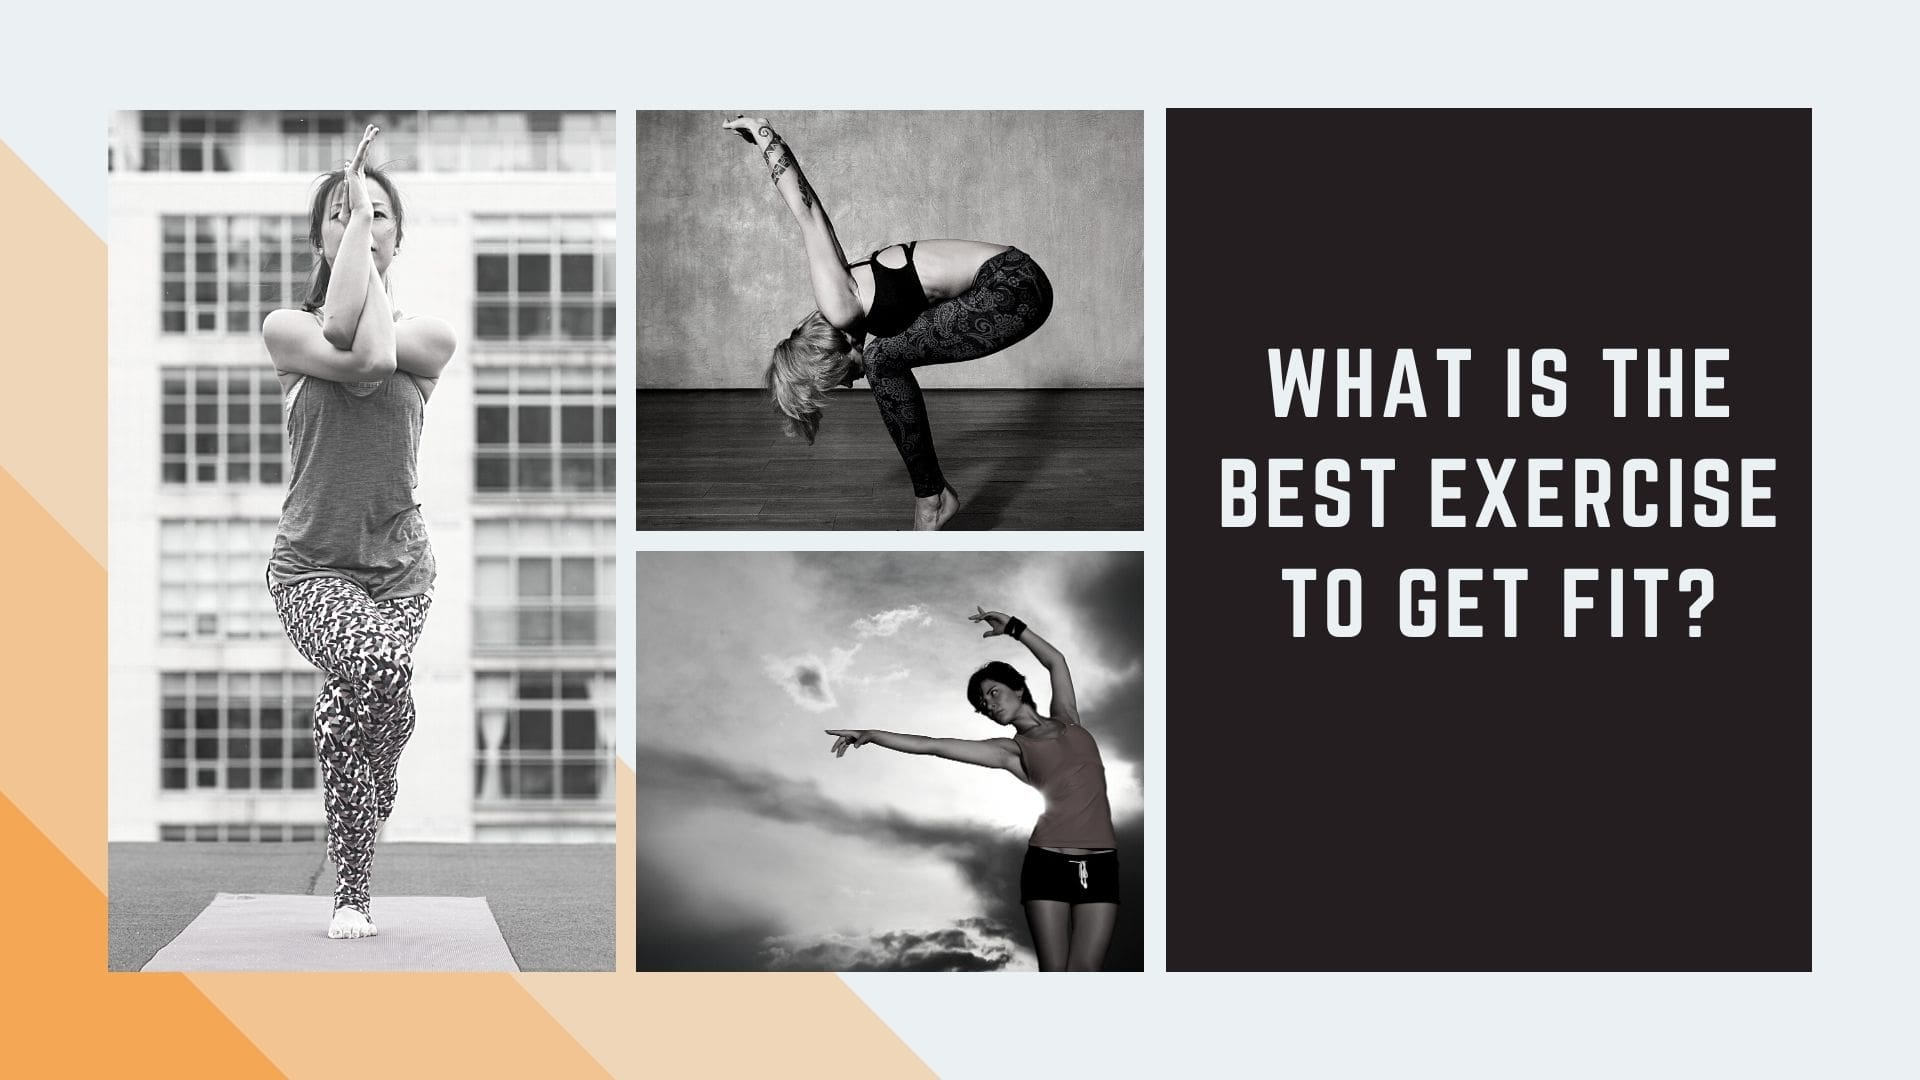 What Is the Best Exercise to Get Fit